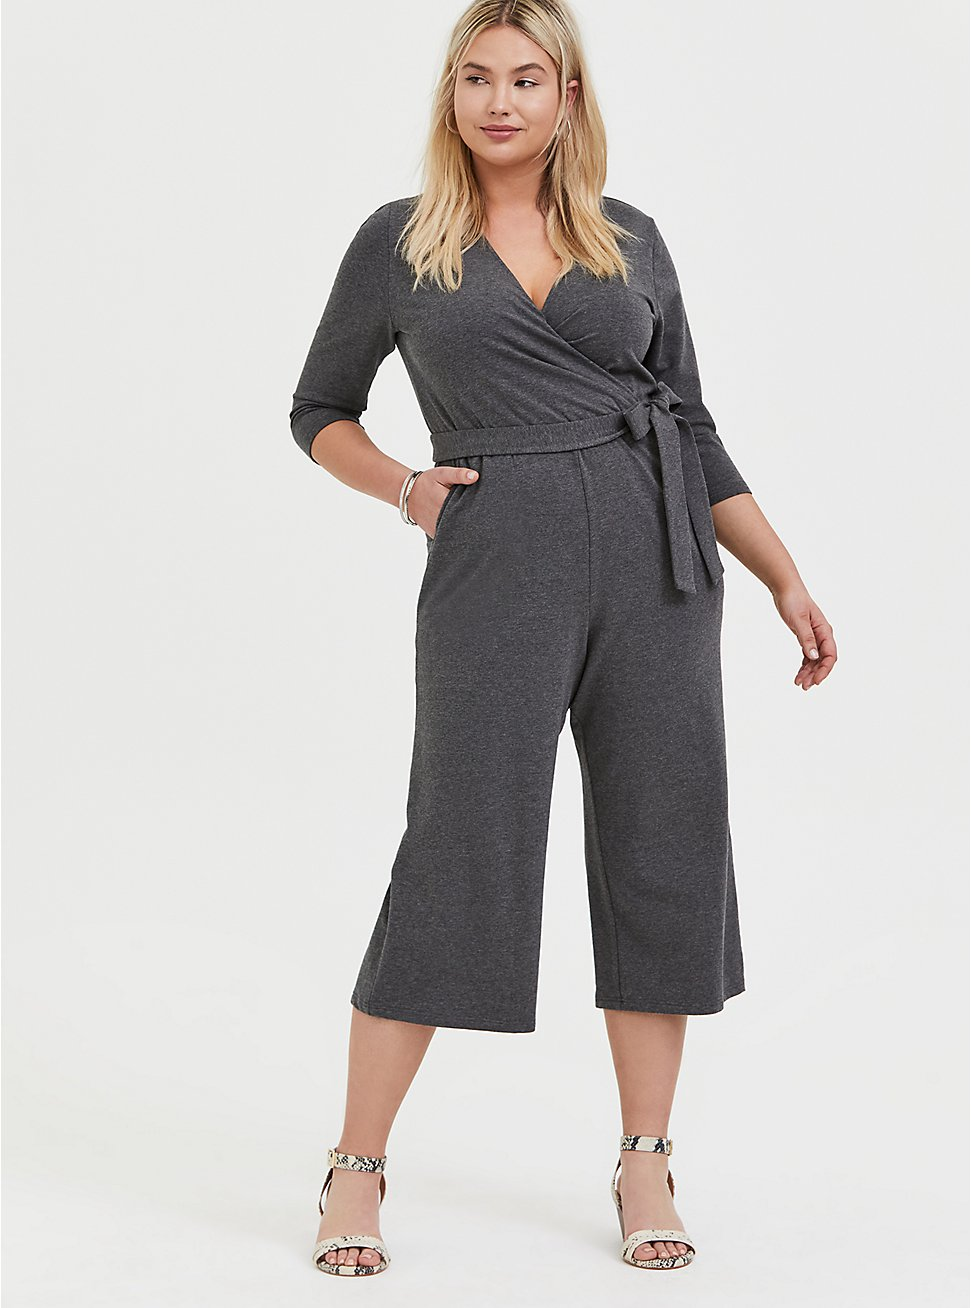 Charcoal Grey Terry Self Tie Culotte Jumpsuit, , fitModel1-hires